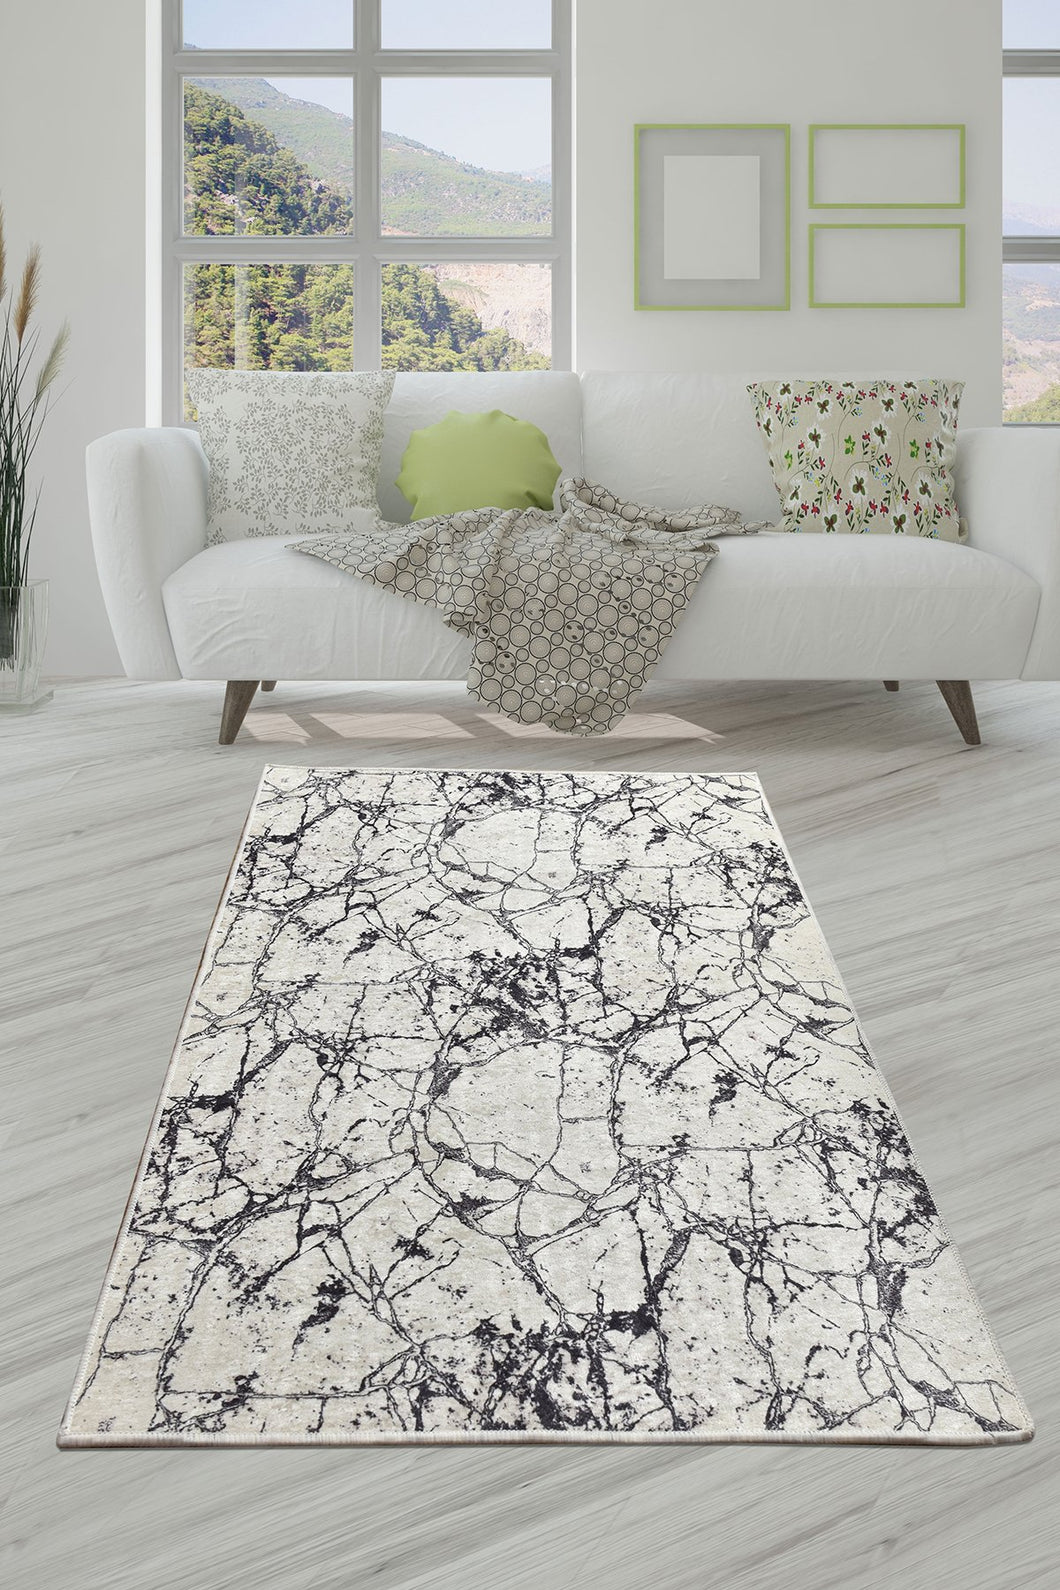 Antdecor Marble Decorative Carpet 160X230 Cm